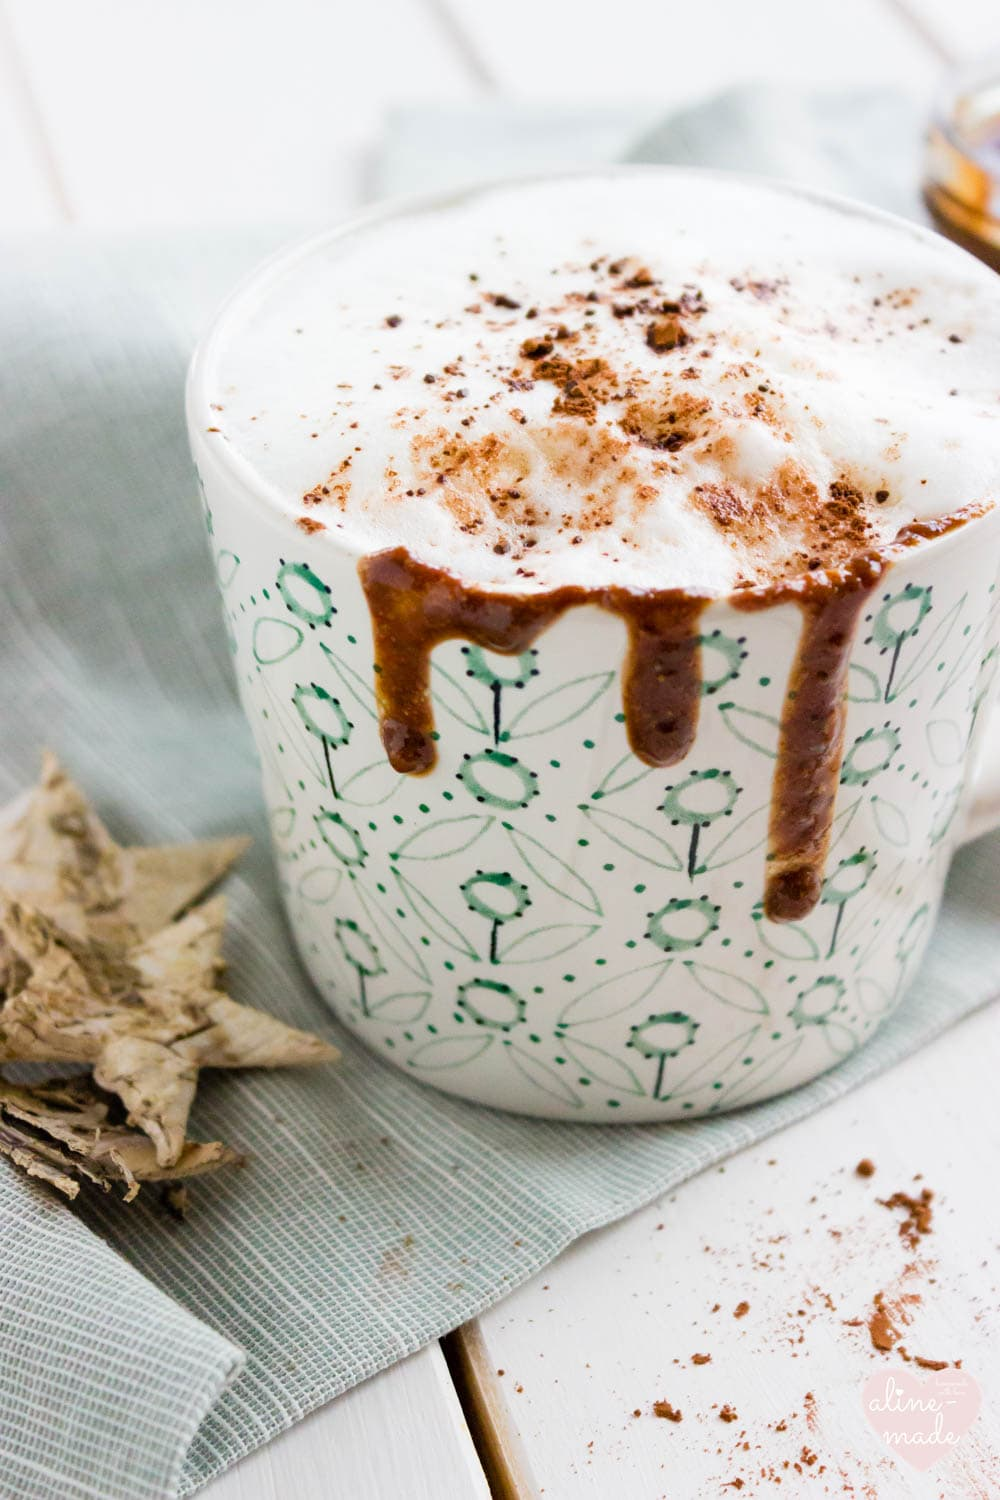 Nutella Cappuccino - Topped with milk foam and cacao powder